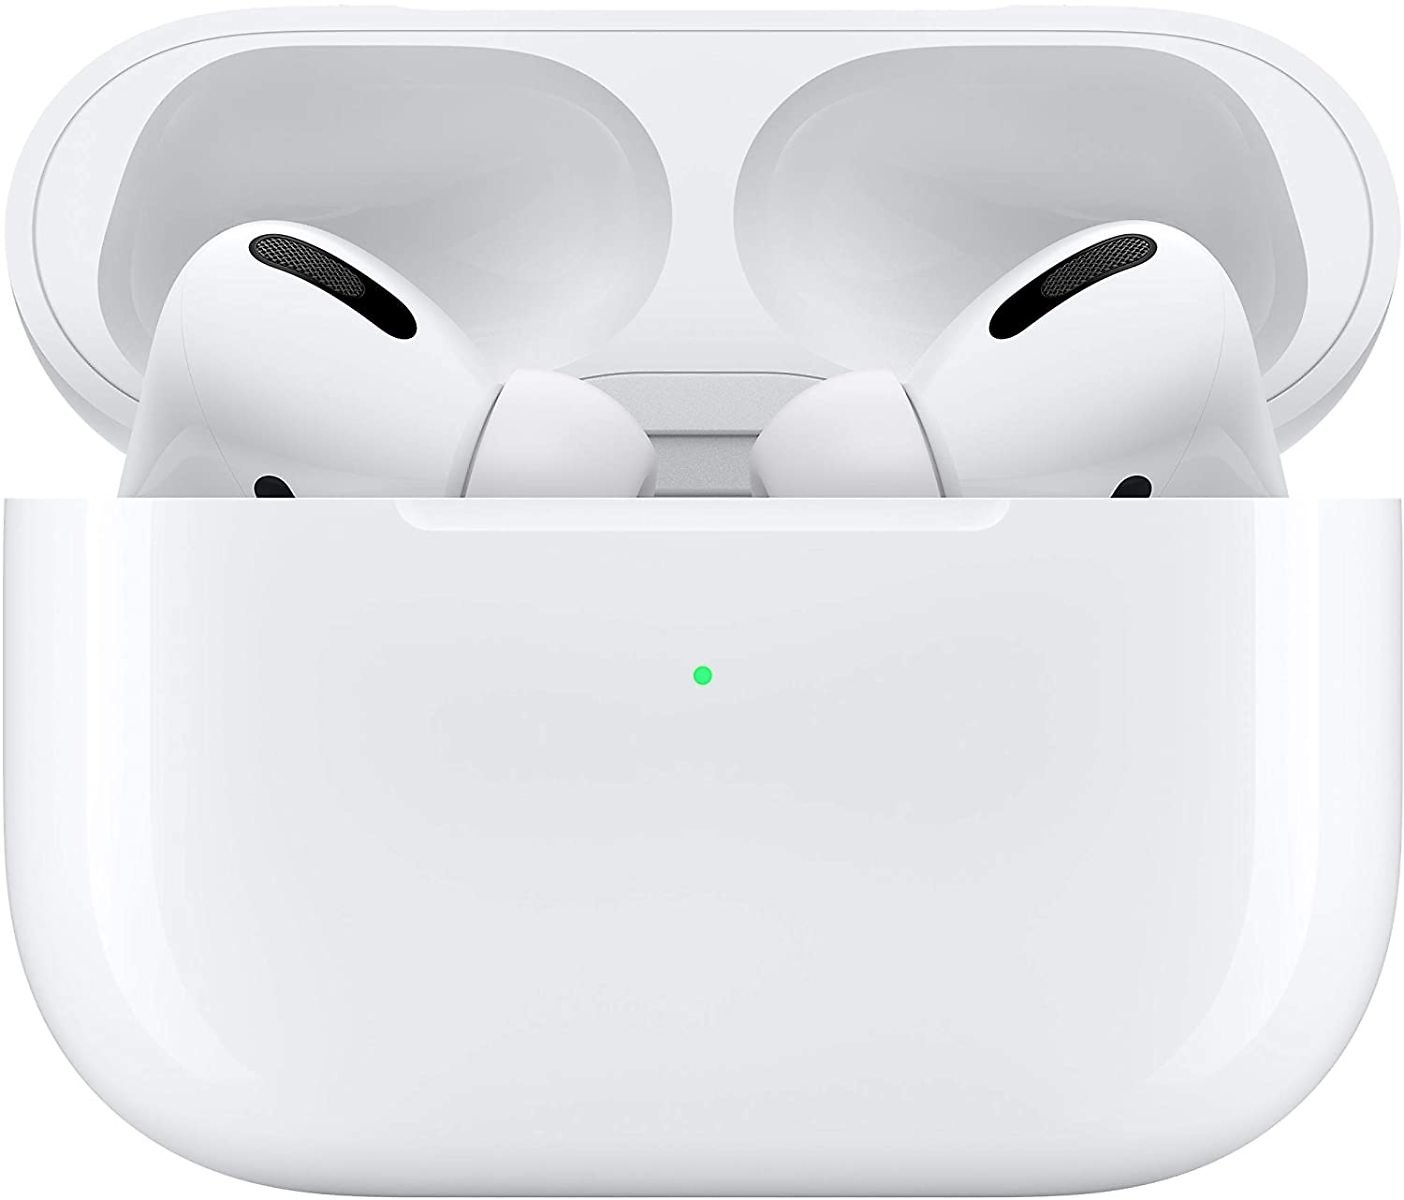 Apple AirPods Pro w/ Noise Cancellation & Wireless Charging Case $189.99 | Refurb $129